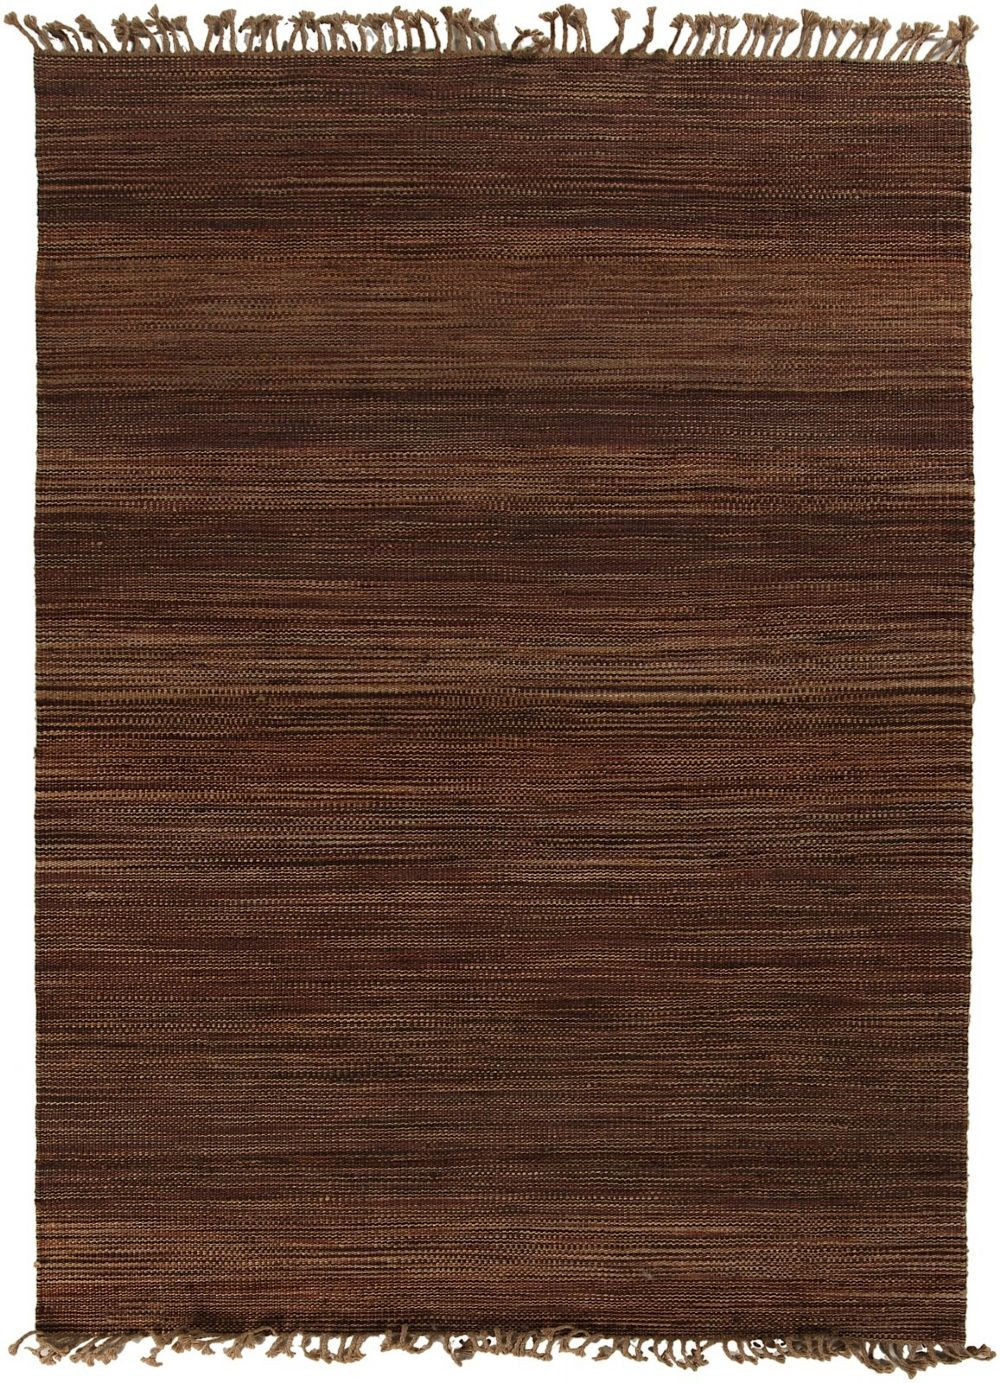 surya woodstock natural fiber area rug collection